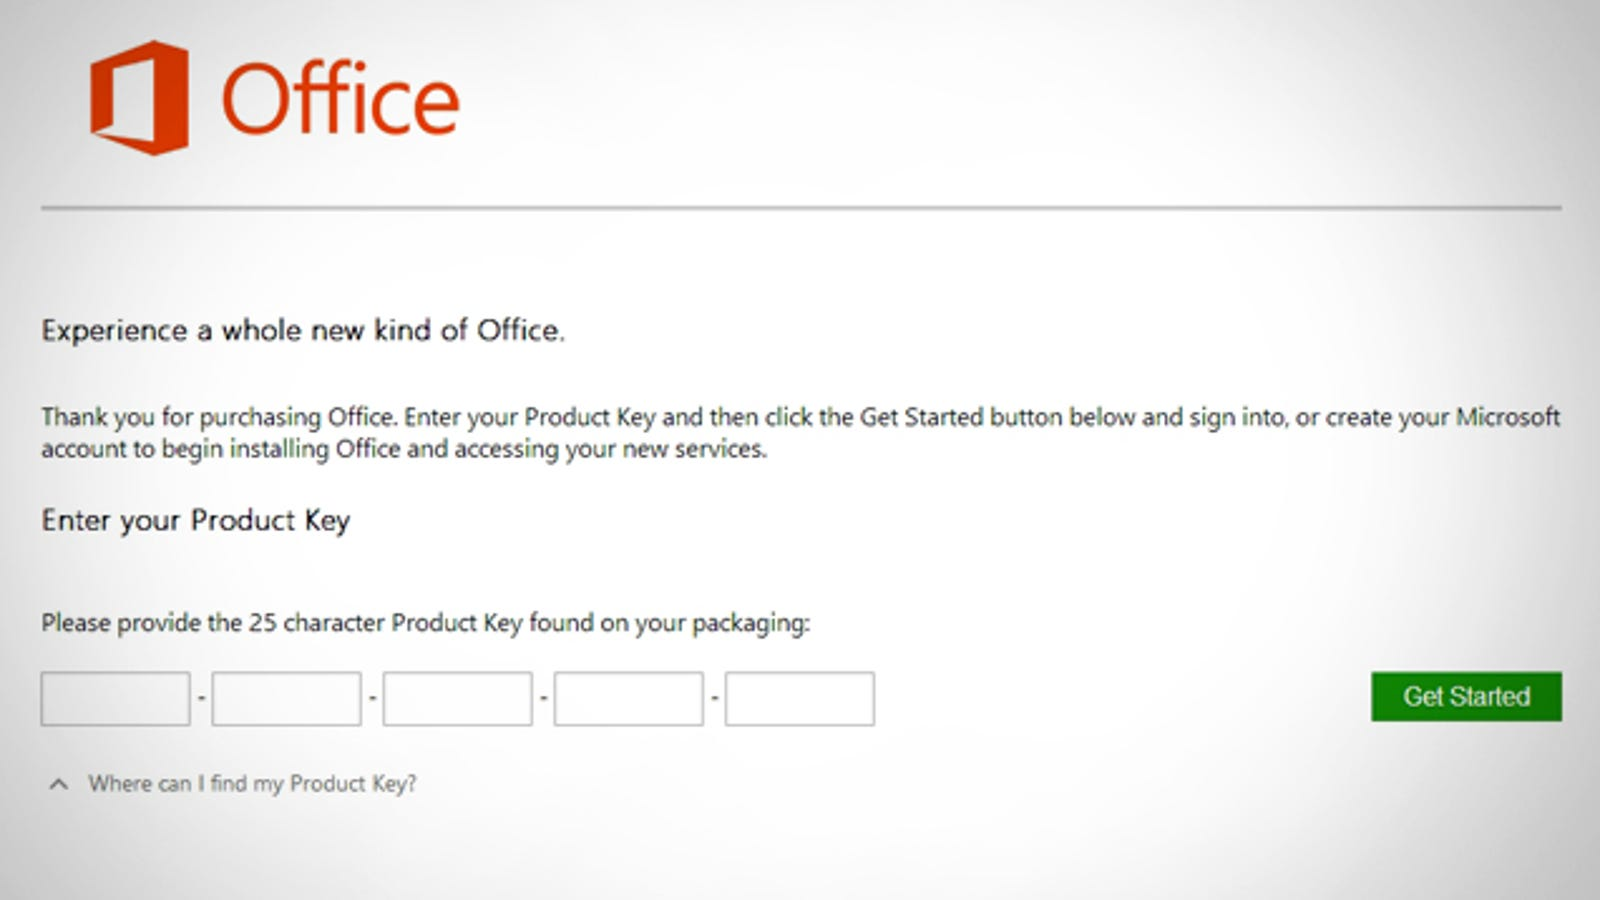 ms office 2013 free download for windows 8.1 with product key